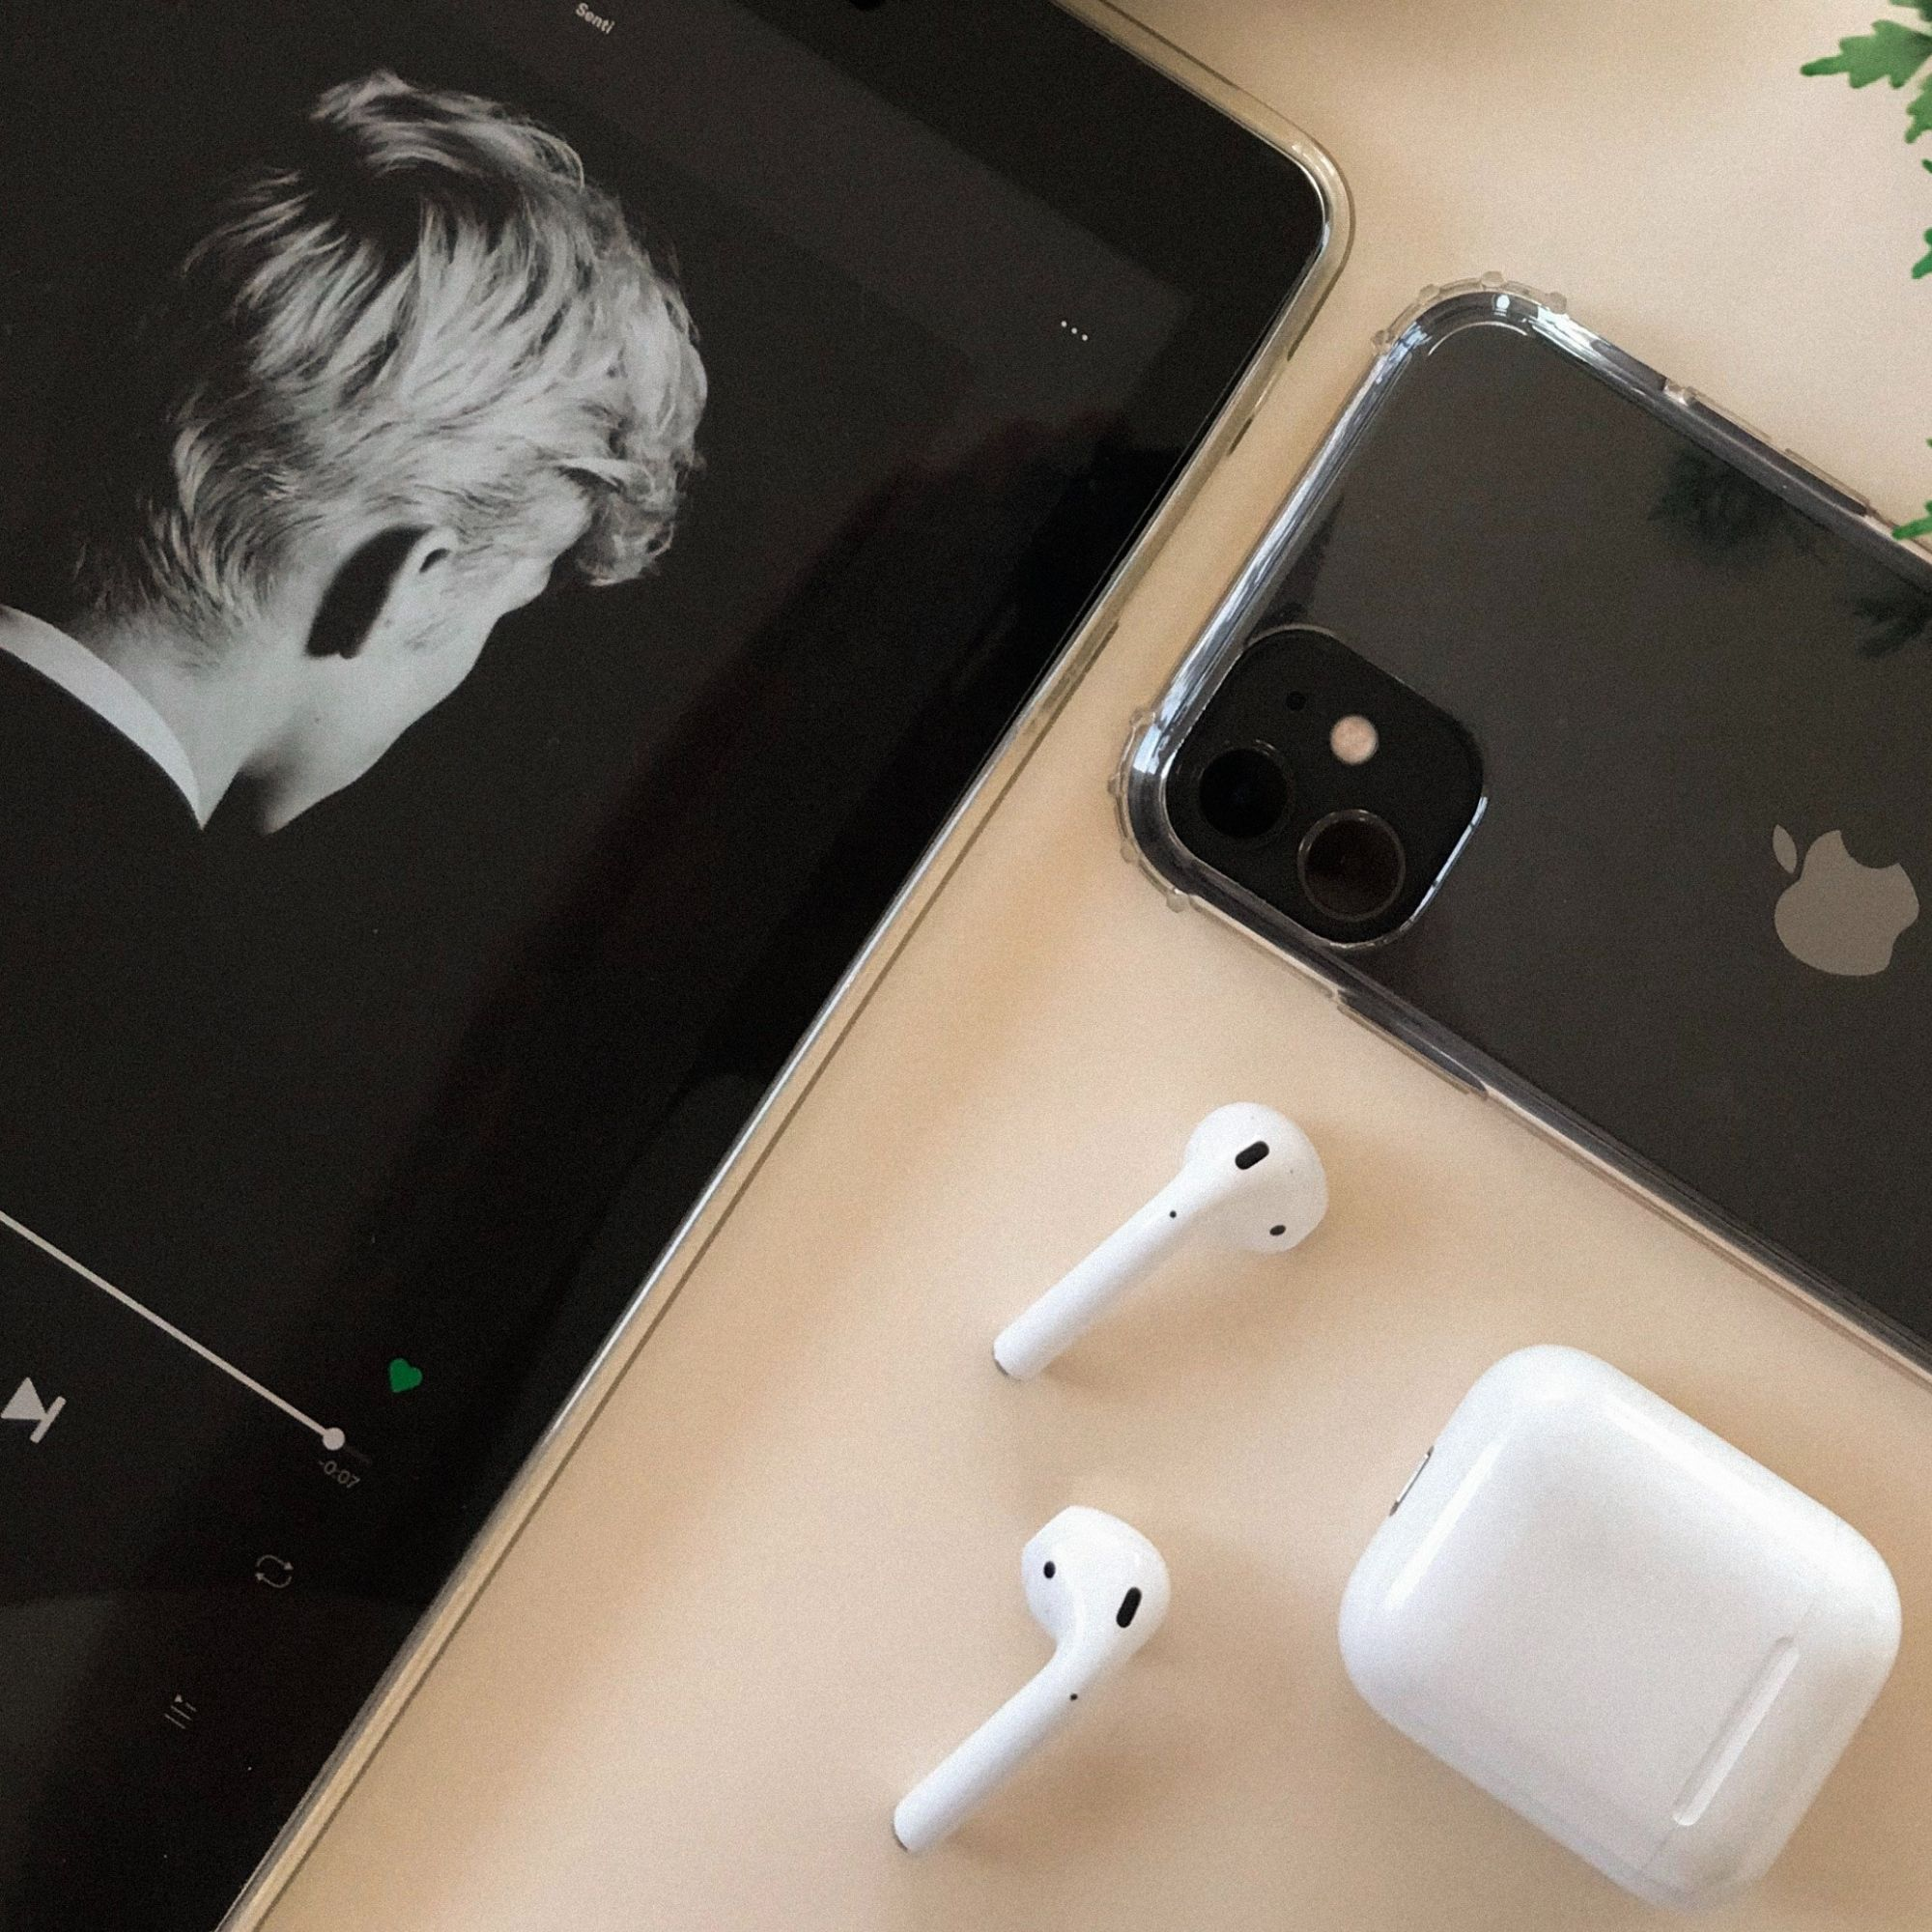 Apple products (airpods, iphone) stylized on table